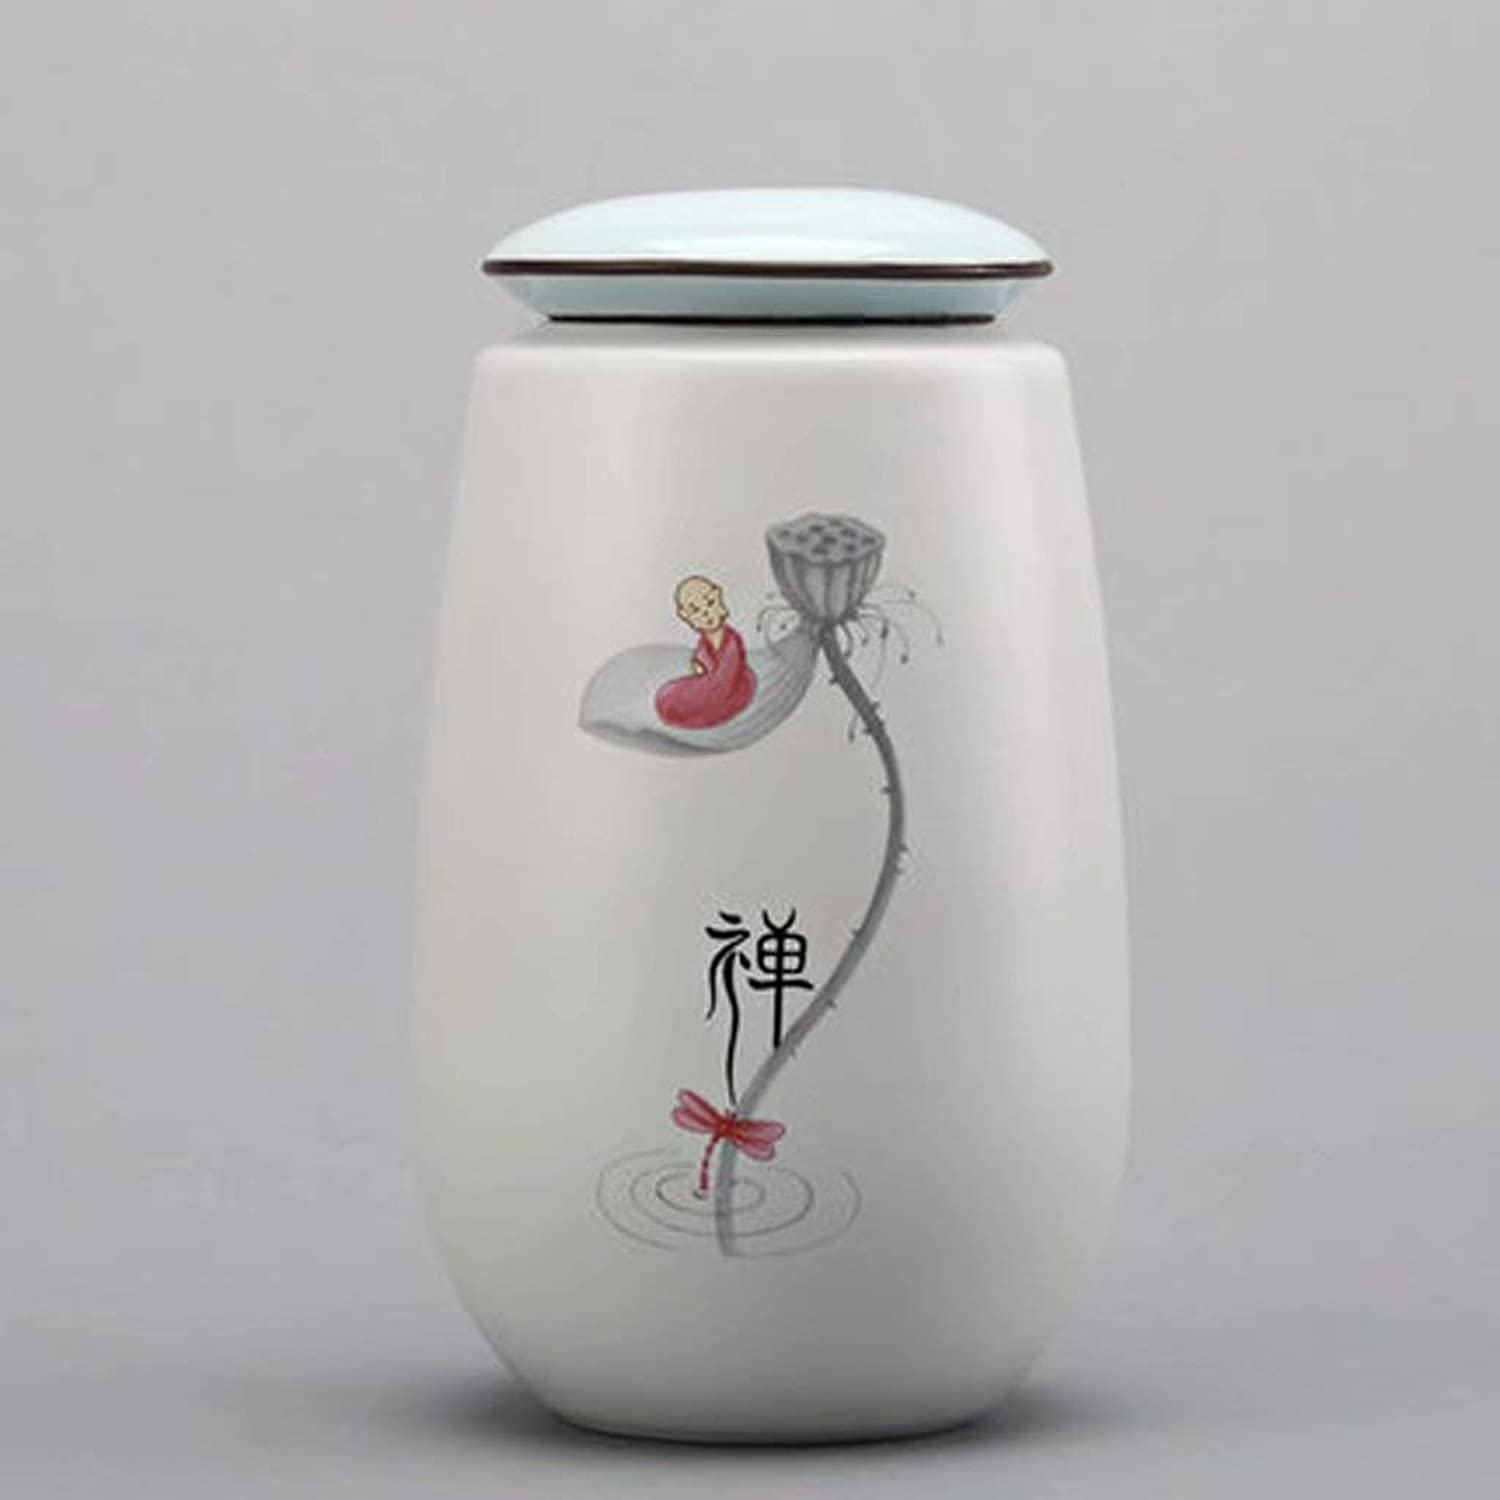 Funeral Urn Small Urns Ashes Keepsake Mini Cremation Urns Ashes Adult  Display Burial Urn at Home Office9.5  15.5cm